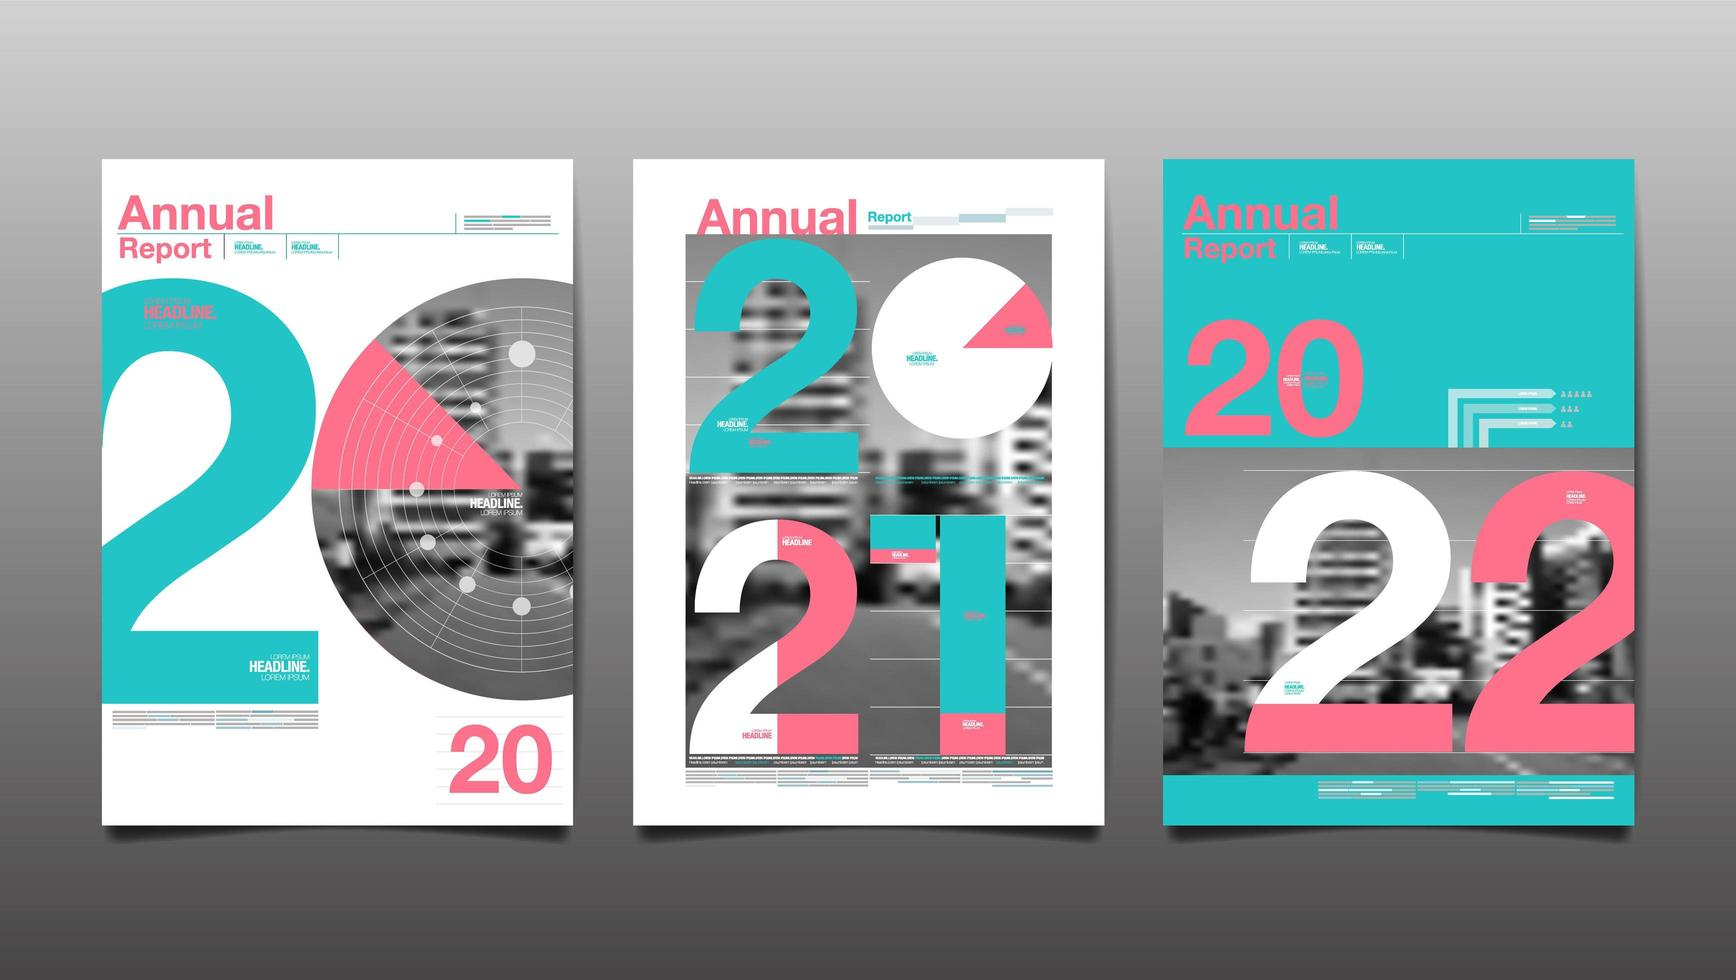 Teal and pink 2020, 2021, 2022 annual reports vector